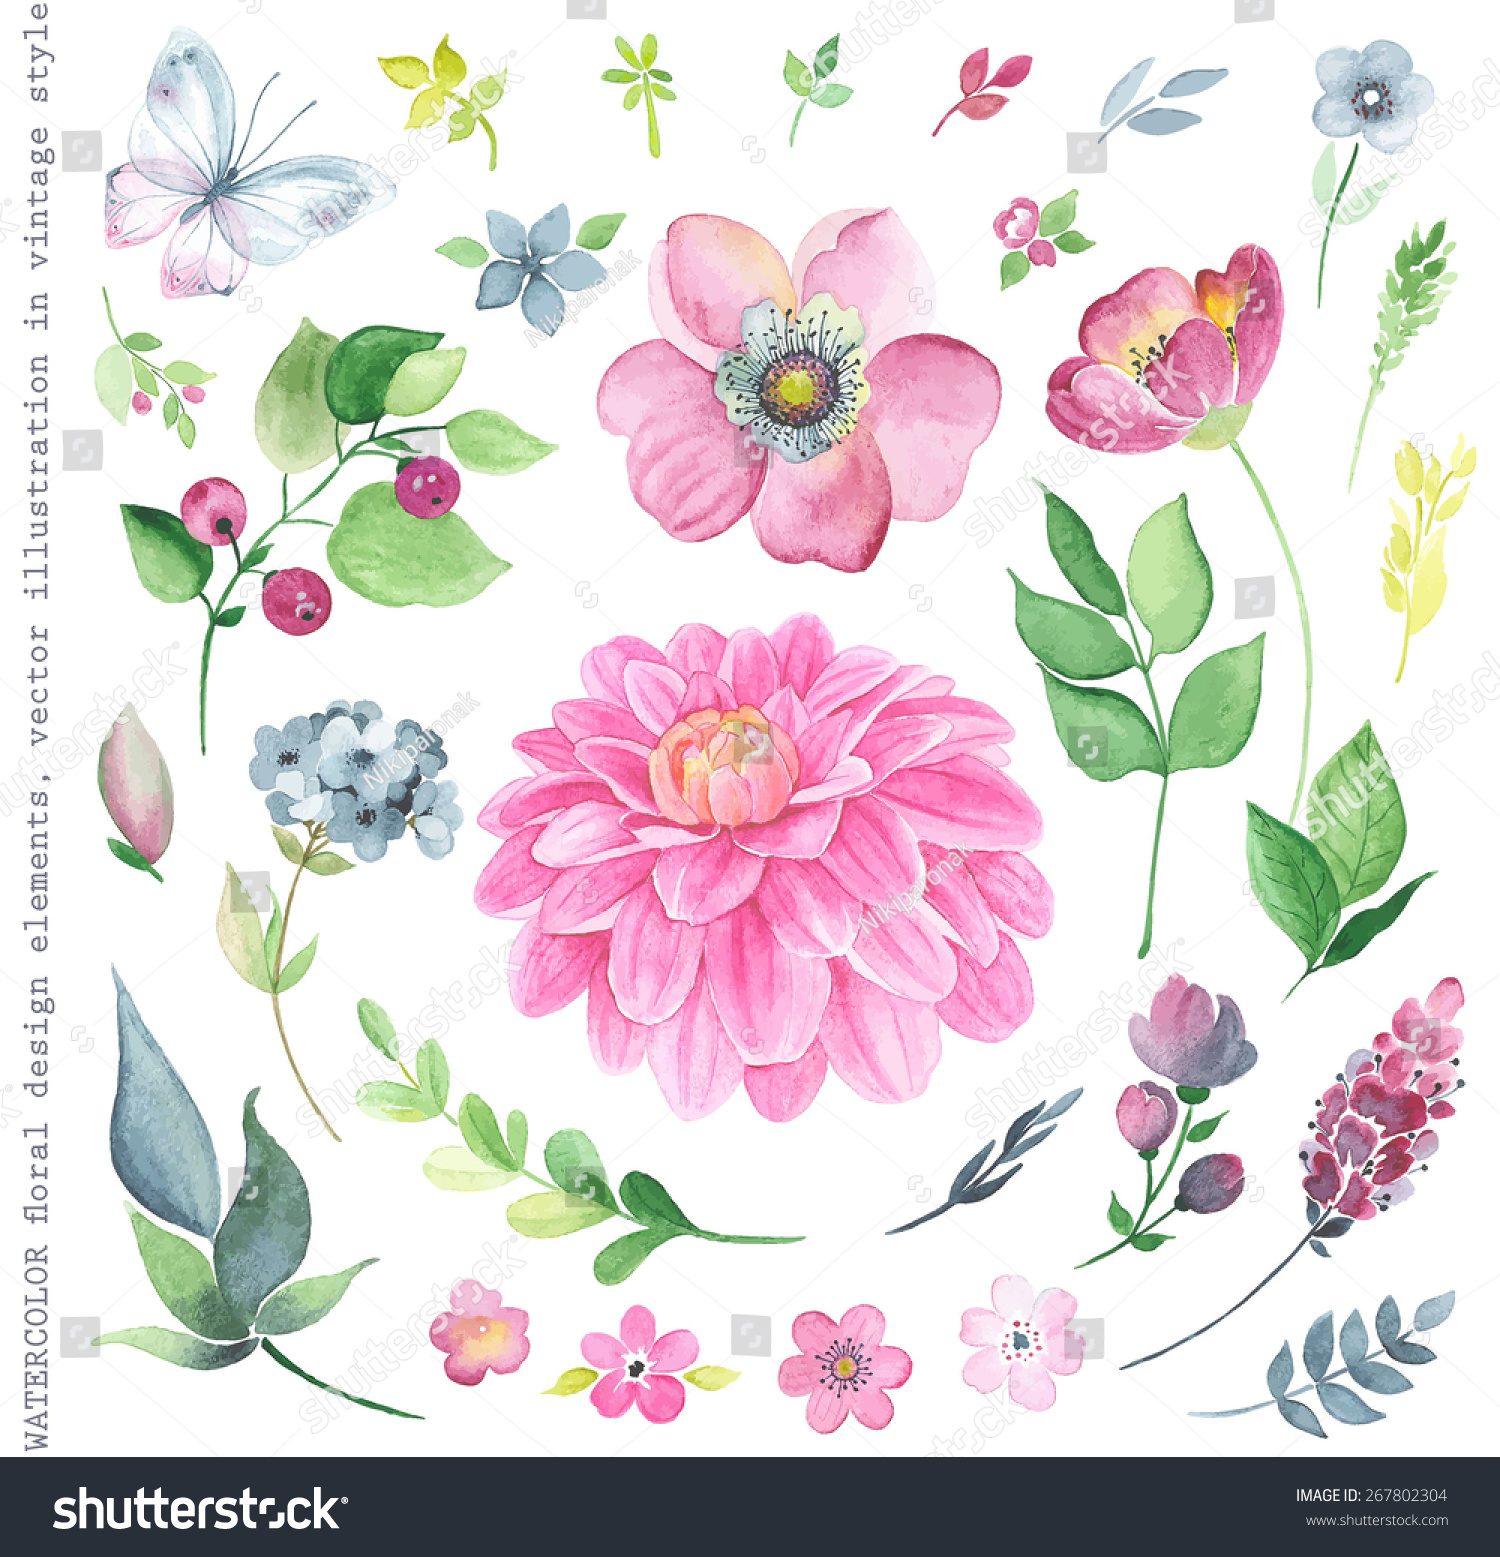 collection of floral design - photo #18